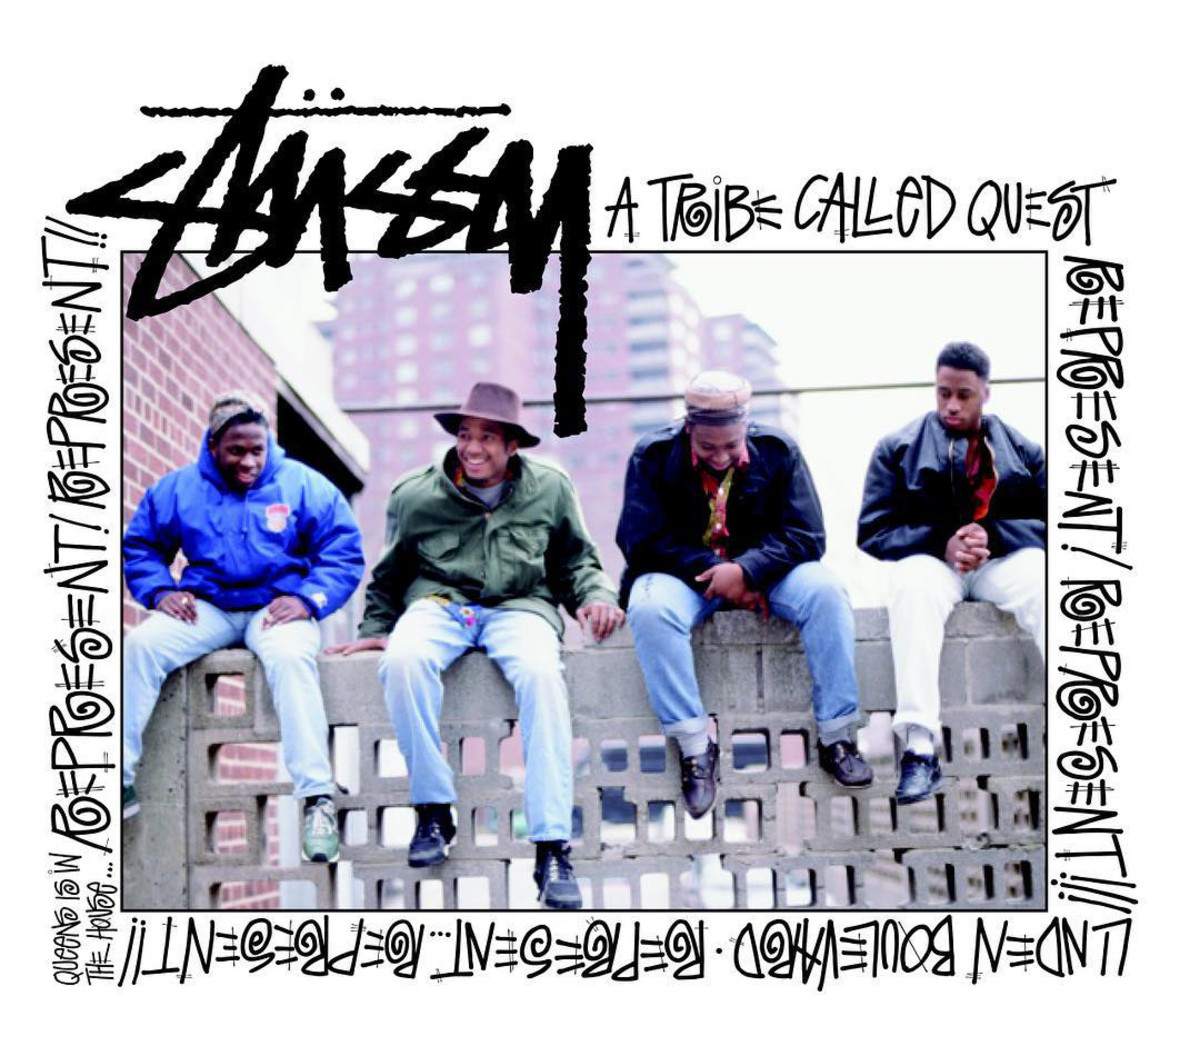 a-tribe-called-quest-stussy-collection -01